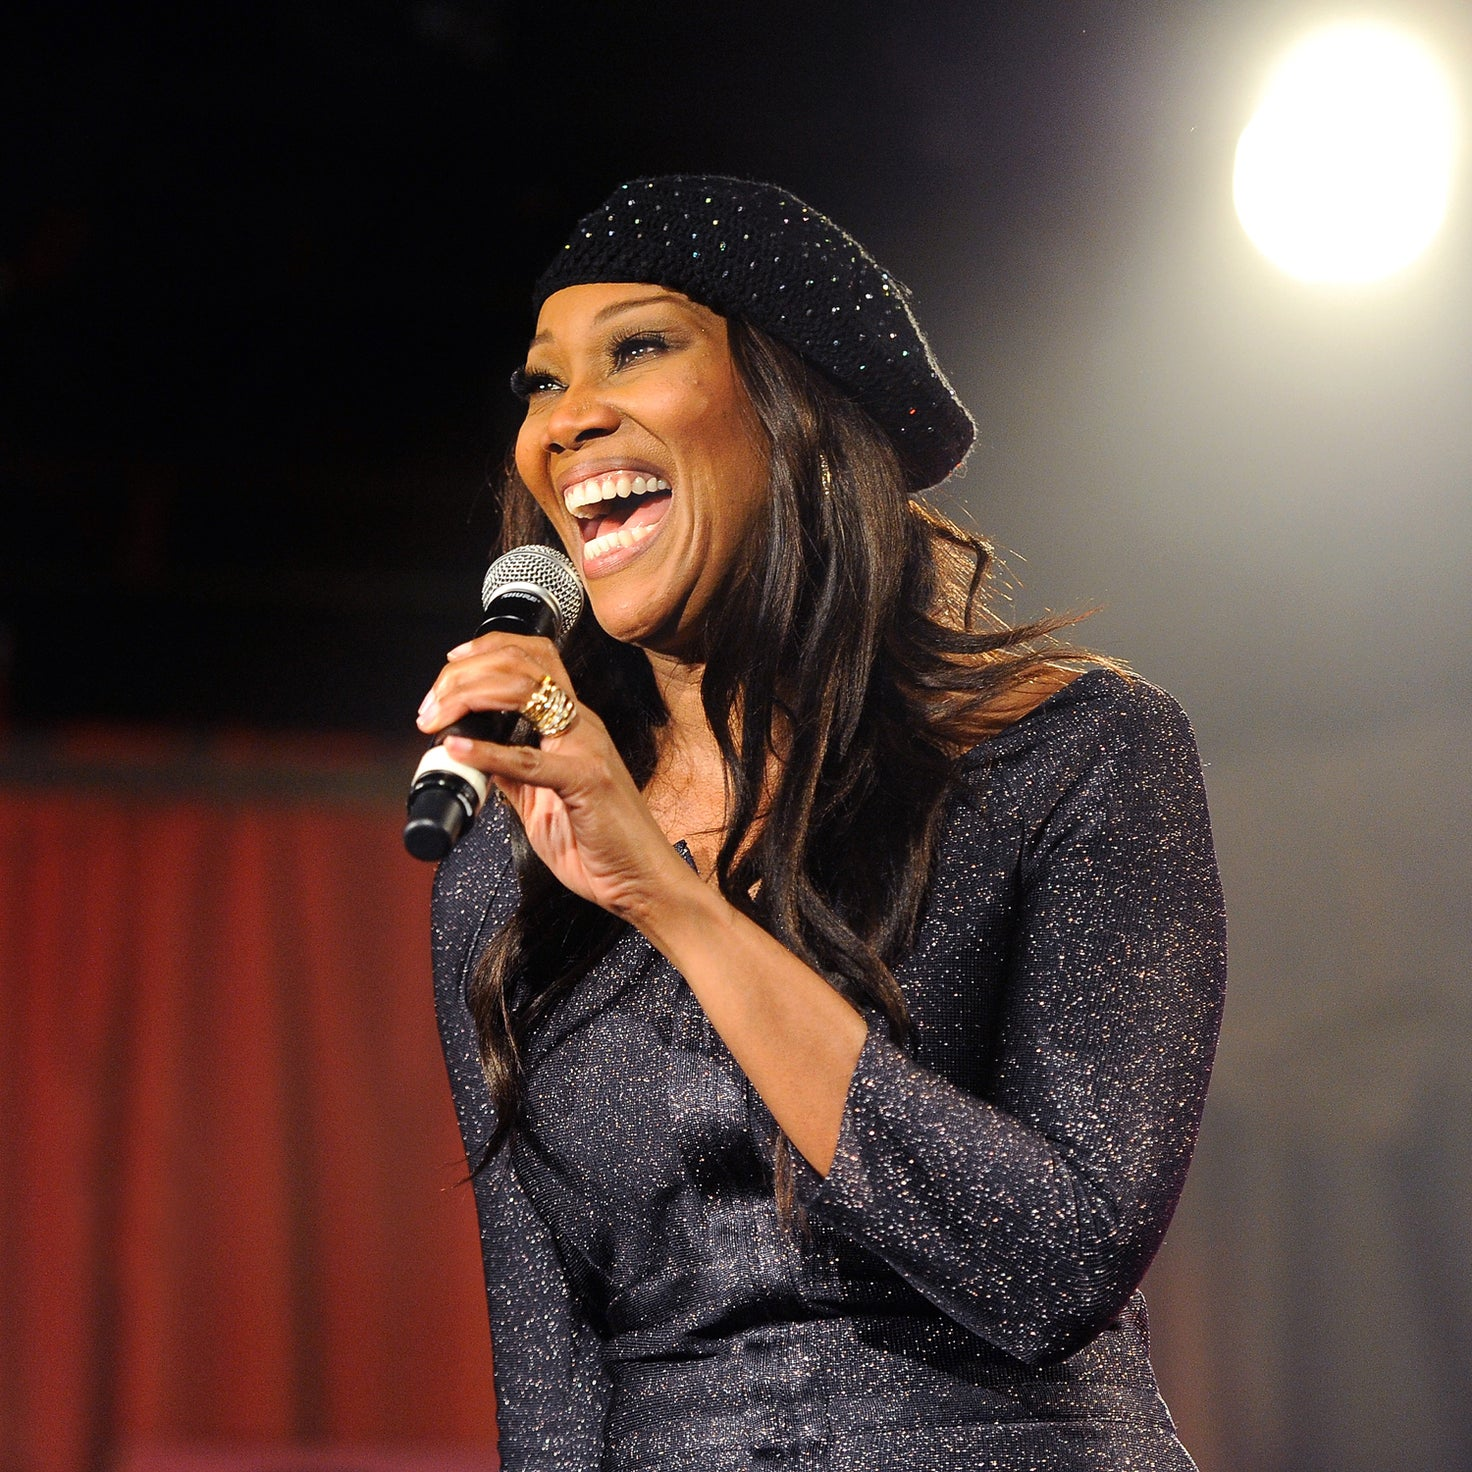 #WellnessWednesday: Yolanda Adams Dishes Out Some Food for Thought